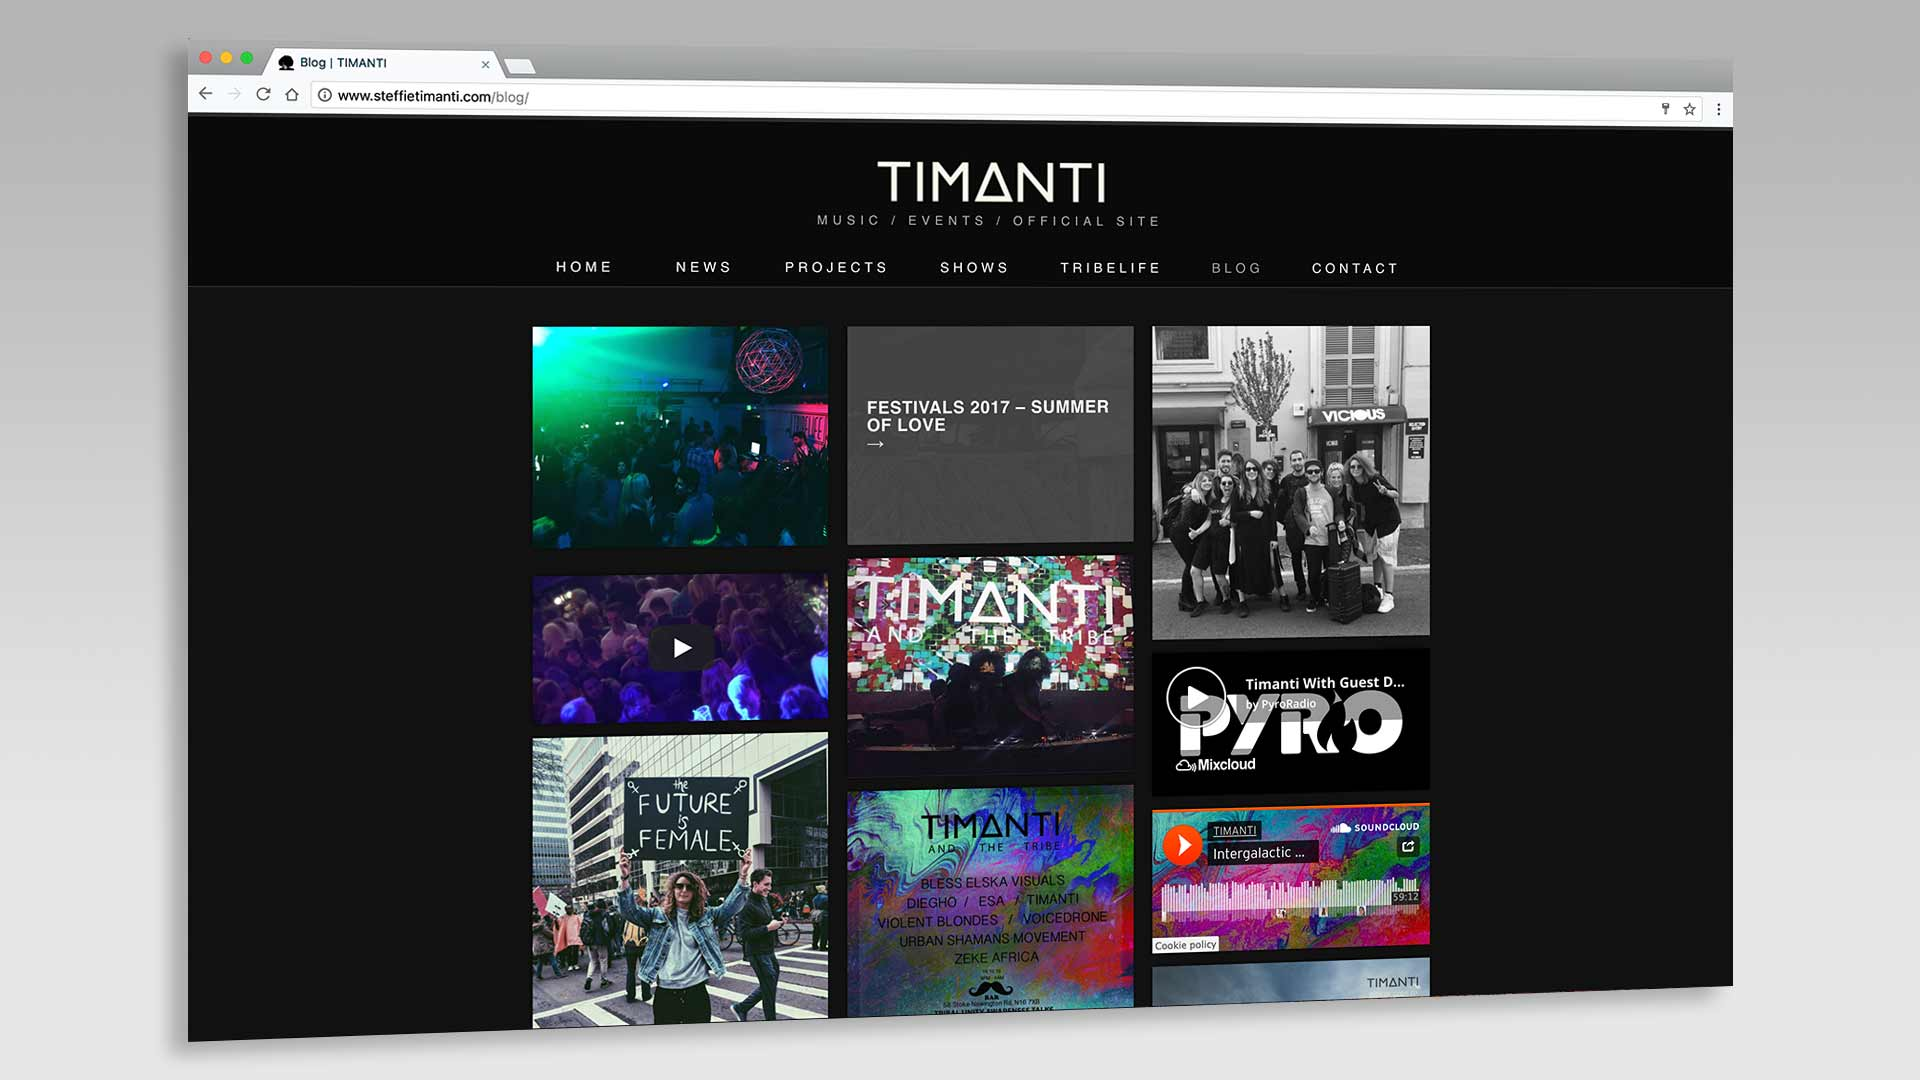 Timanti Blog Page Title Overlay